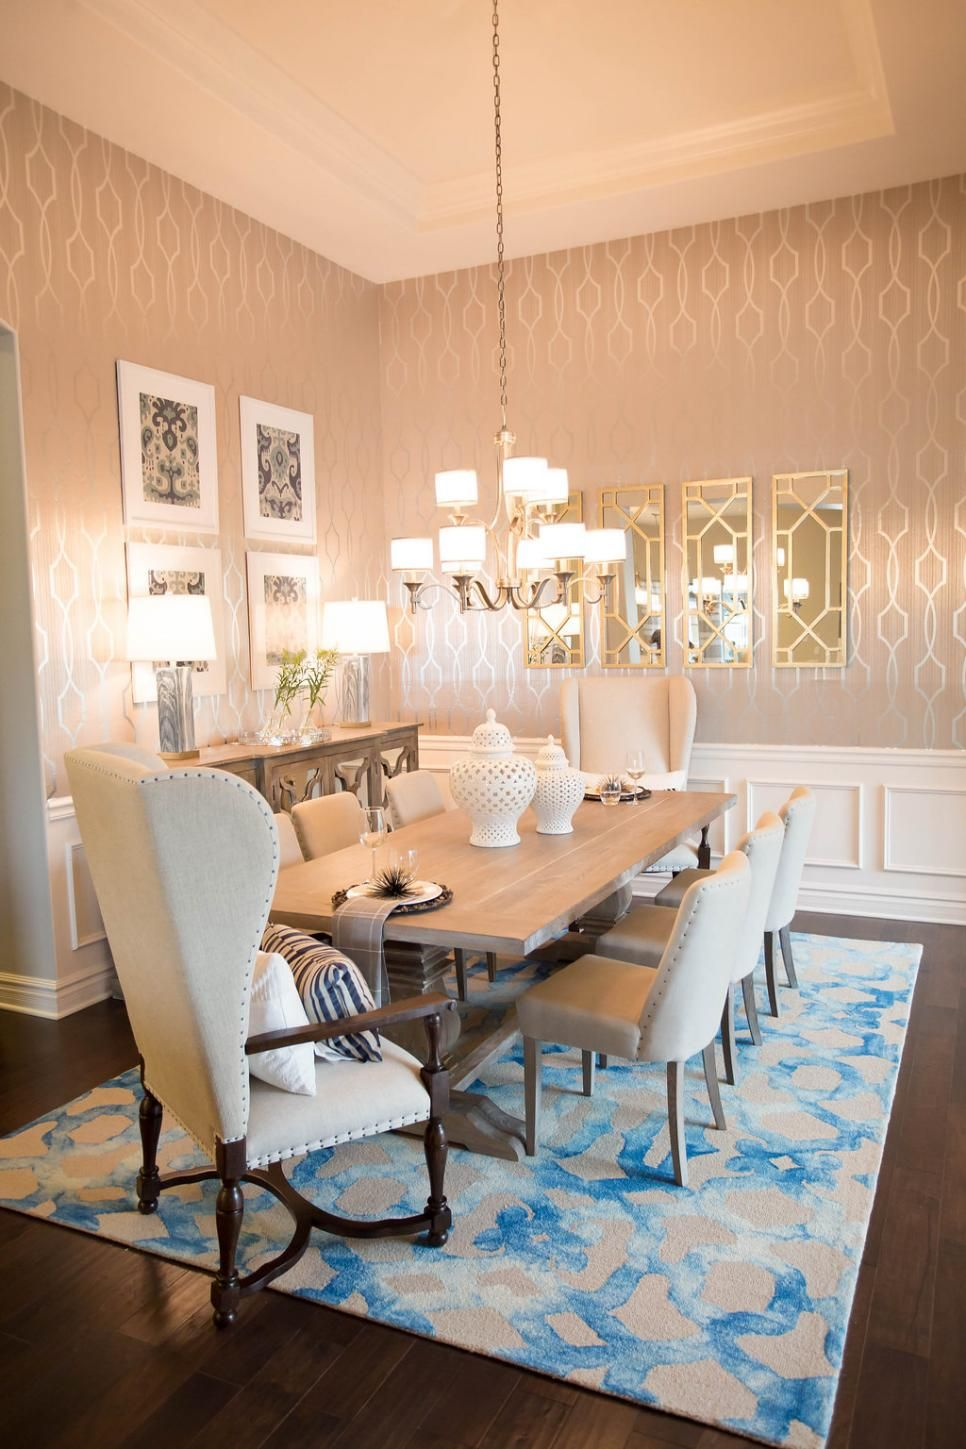 A Shimmering Blue And Beige Rug Pops In This Glamorous, Neutral And Transitional  Dining Room